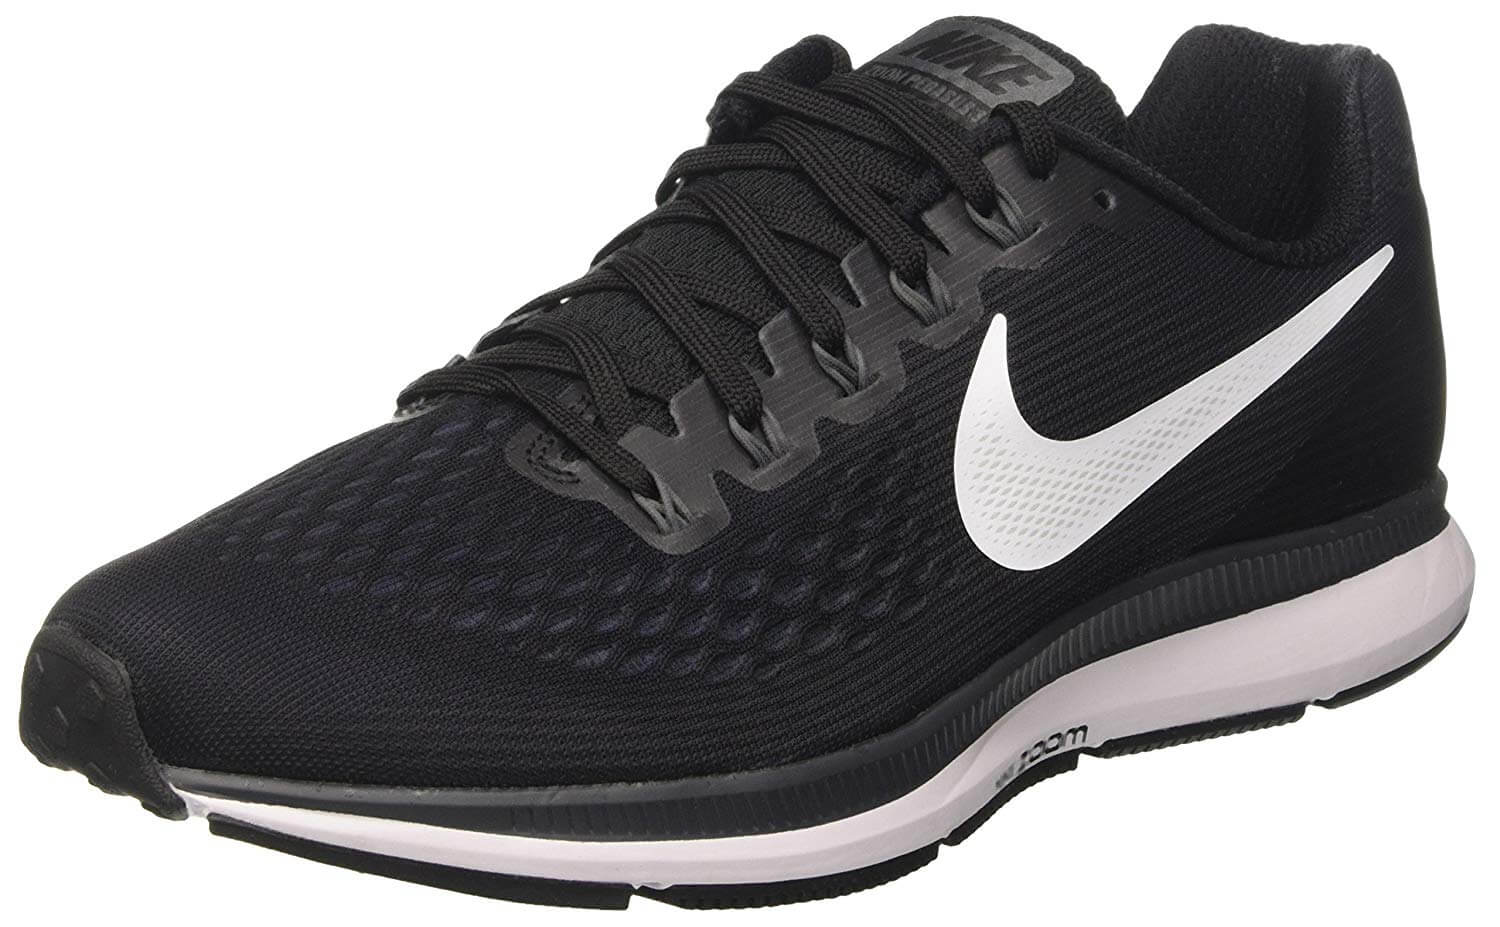 b8f587e82226 Nike Air Zoom Pegasus 34 Reviewed for Performance in 2019